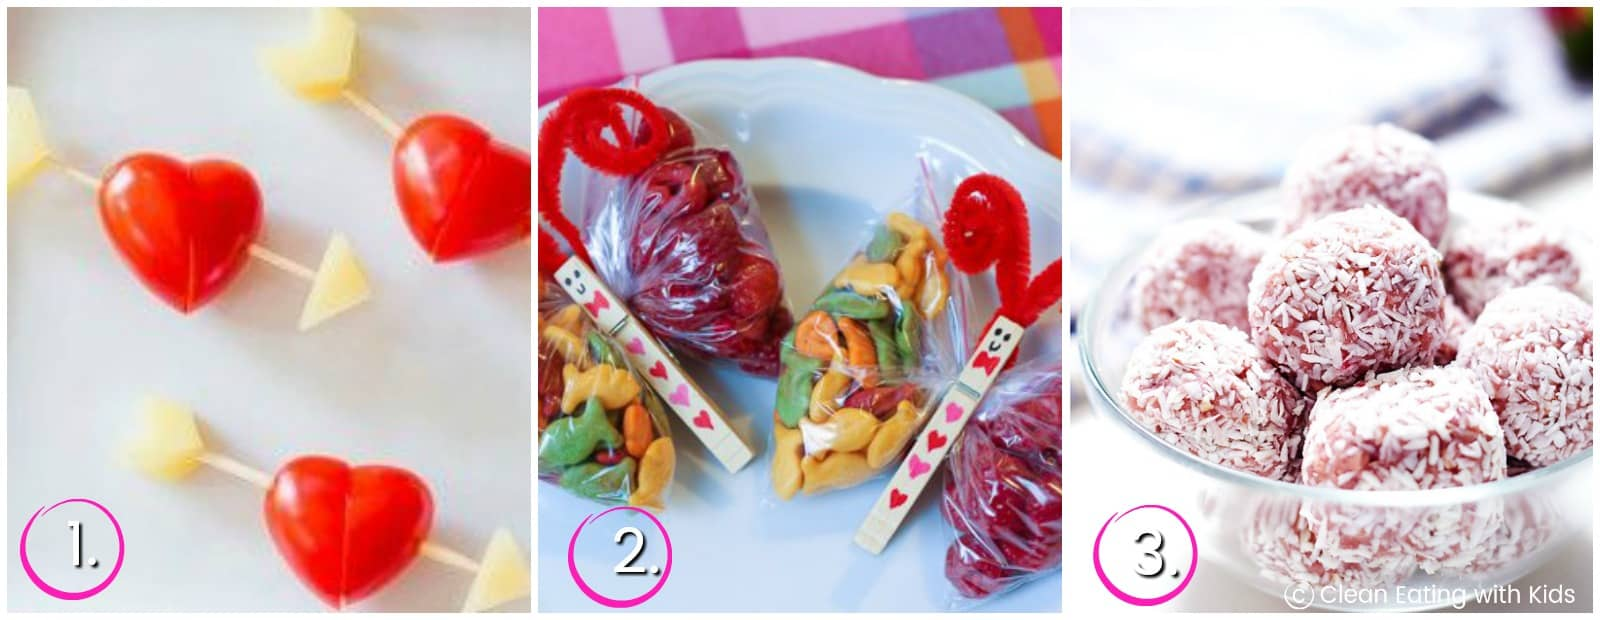 Thinking about trying some of these easy ideas for making Valentine's Day themed packed lunch box for the kids (and maybe husband?)